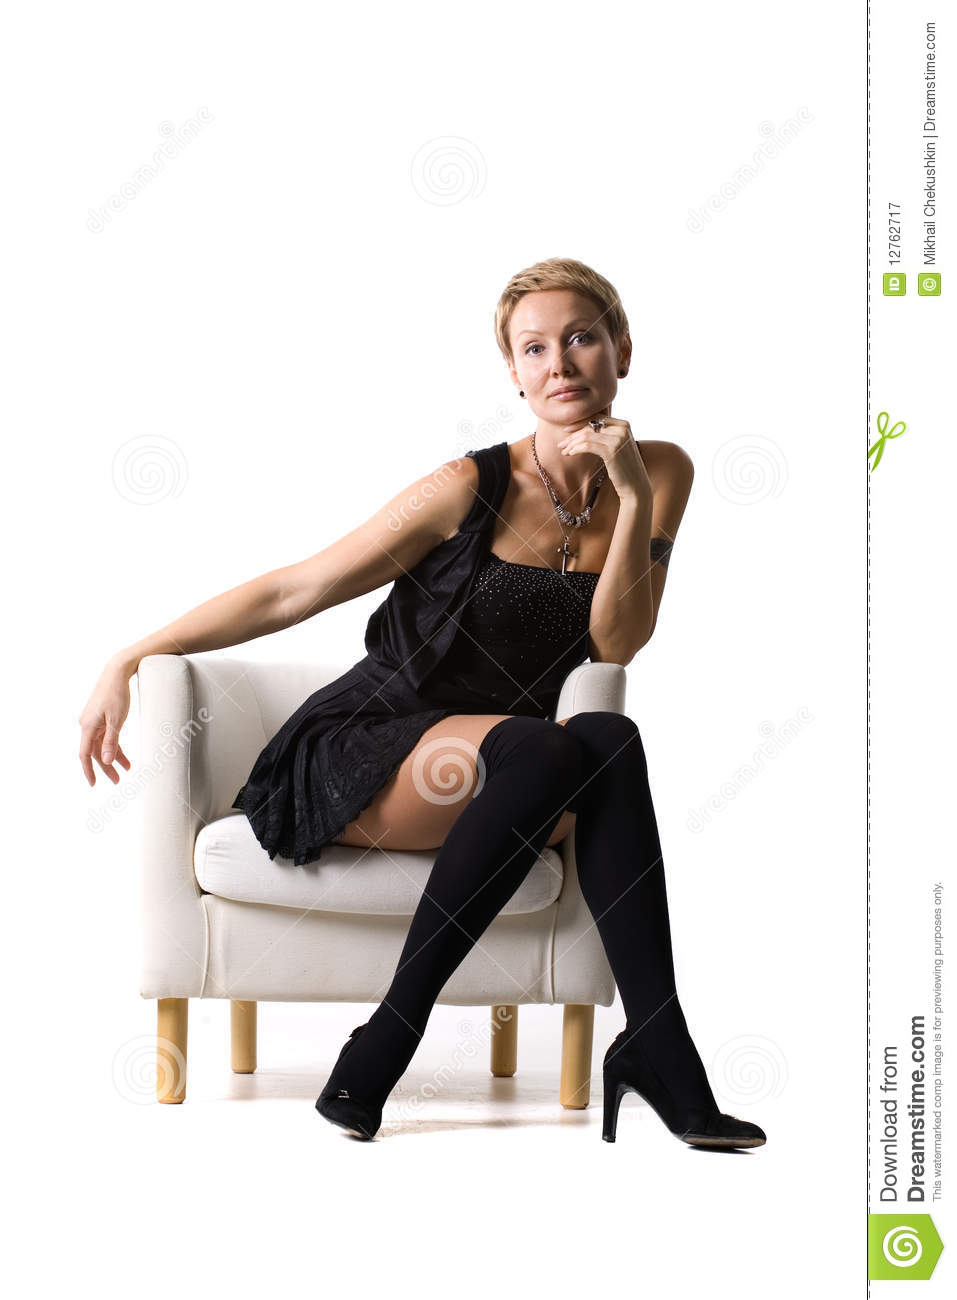 Middle age pantyhose models